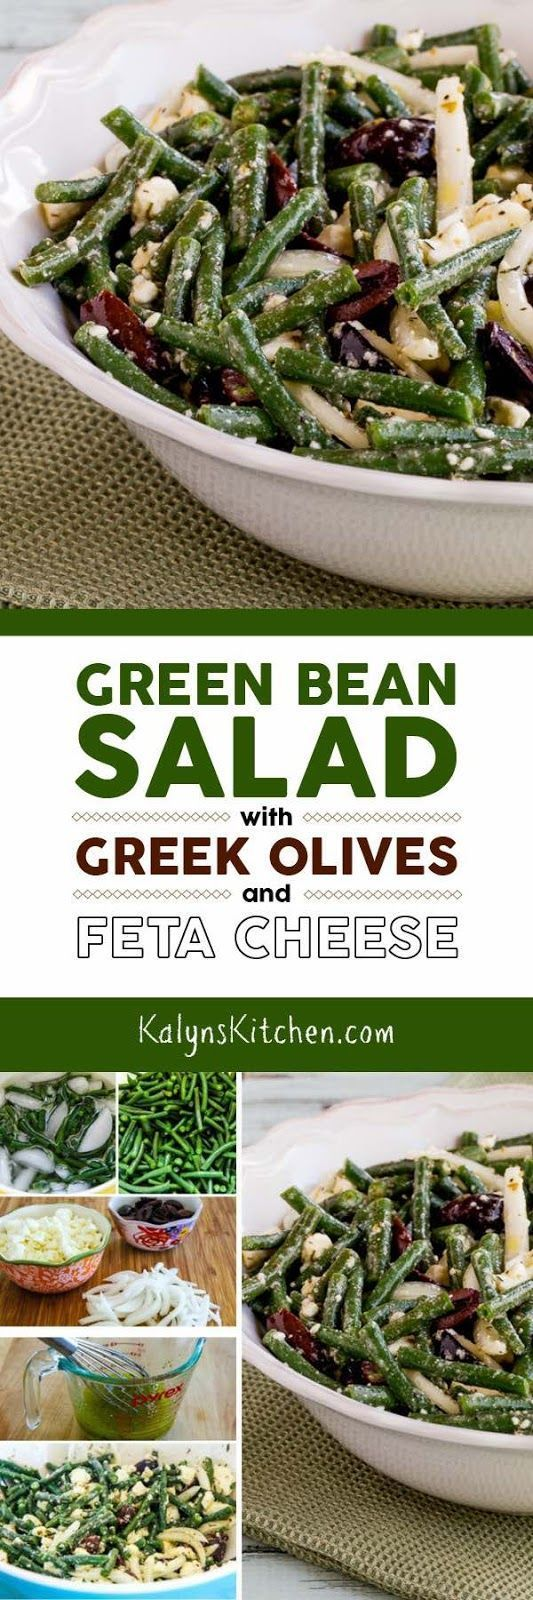 I absolutely LOVE this Green Bean Salad with Greek Olives…